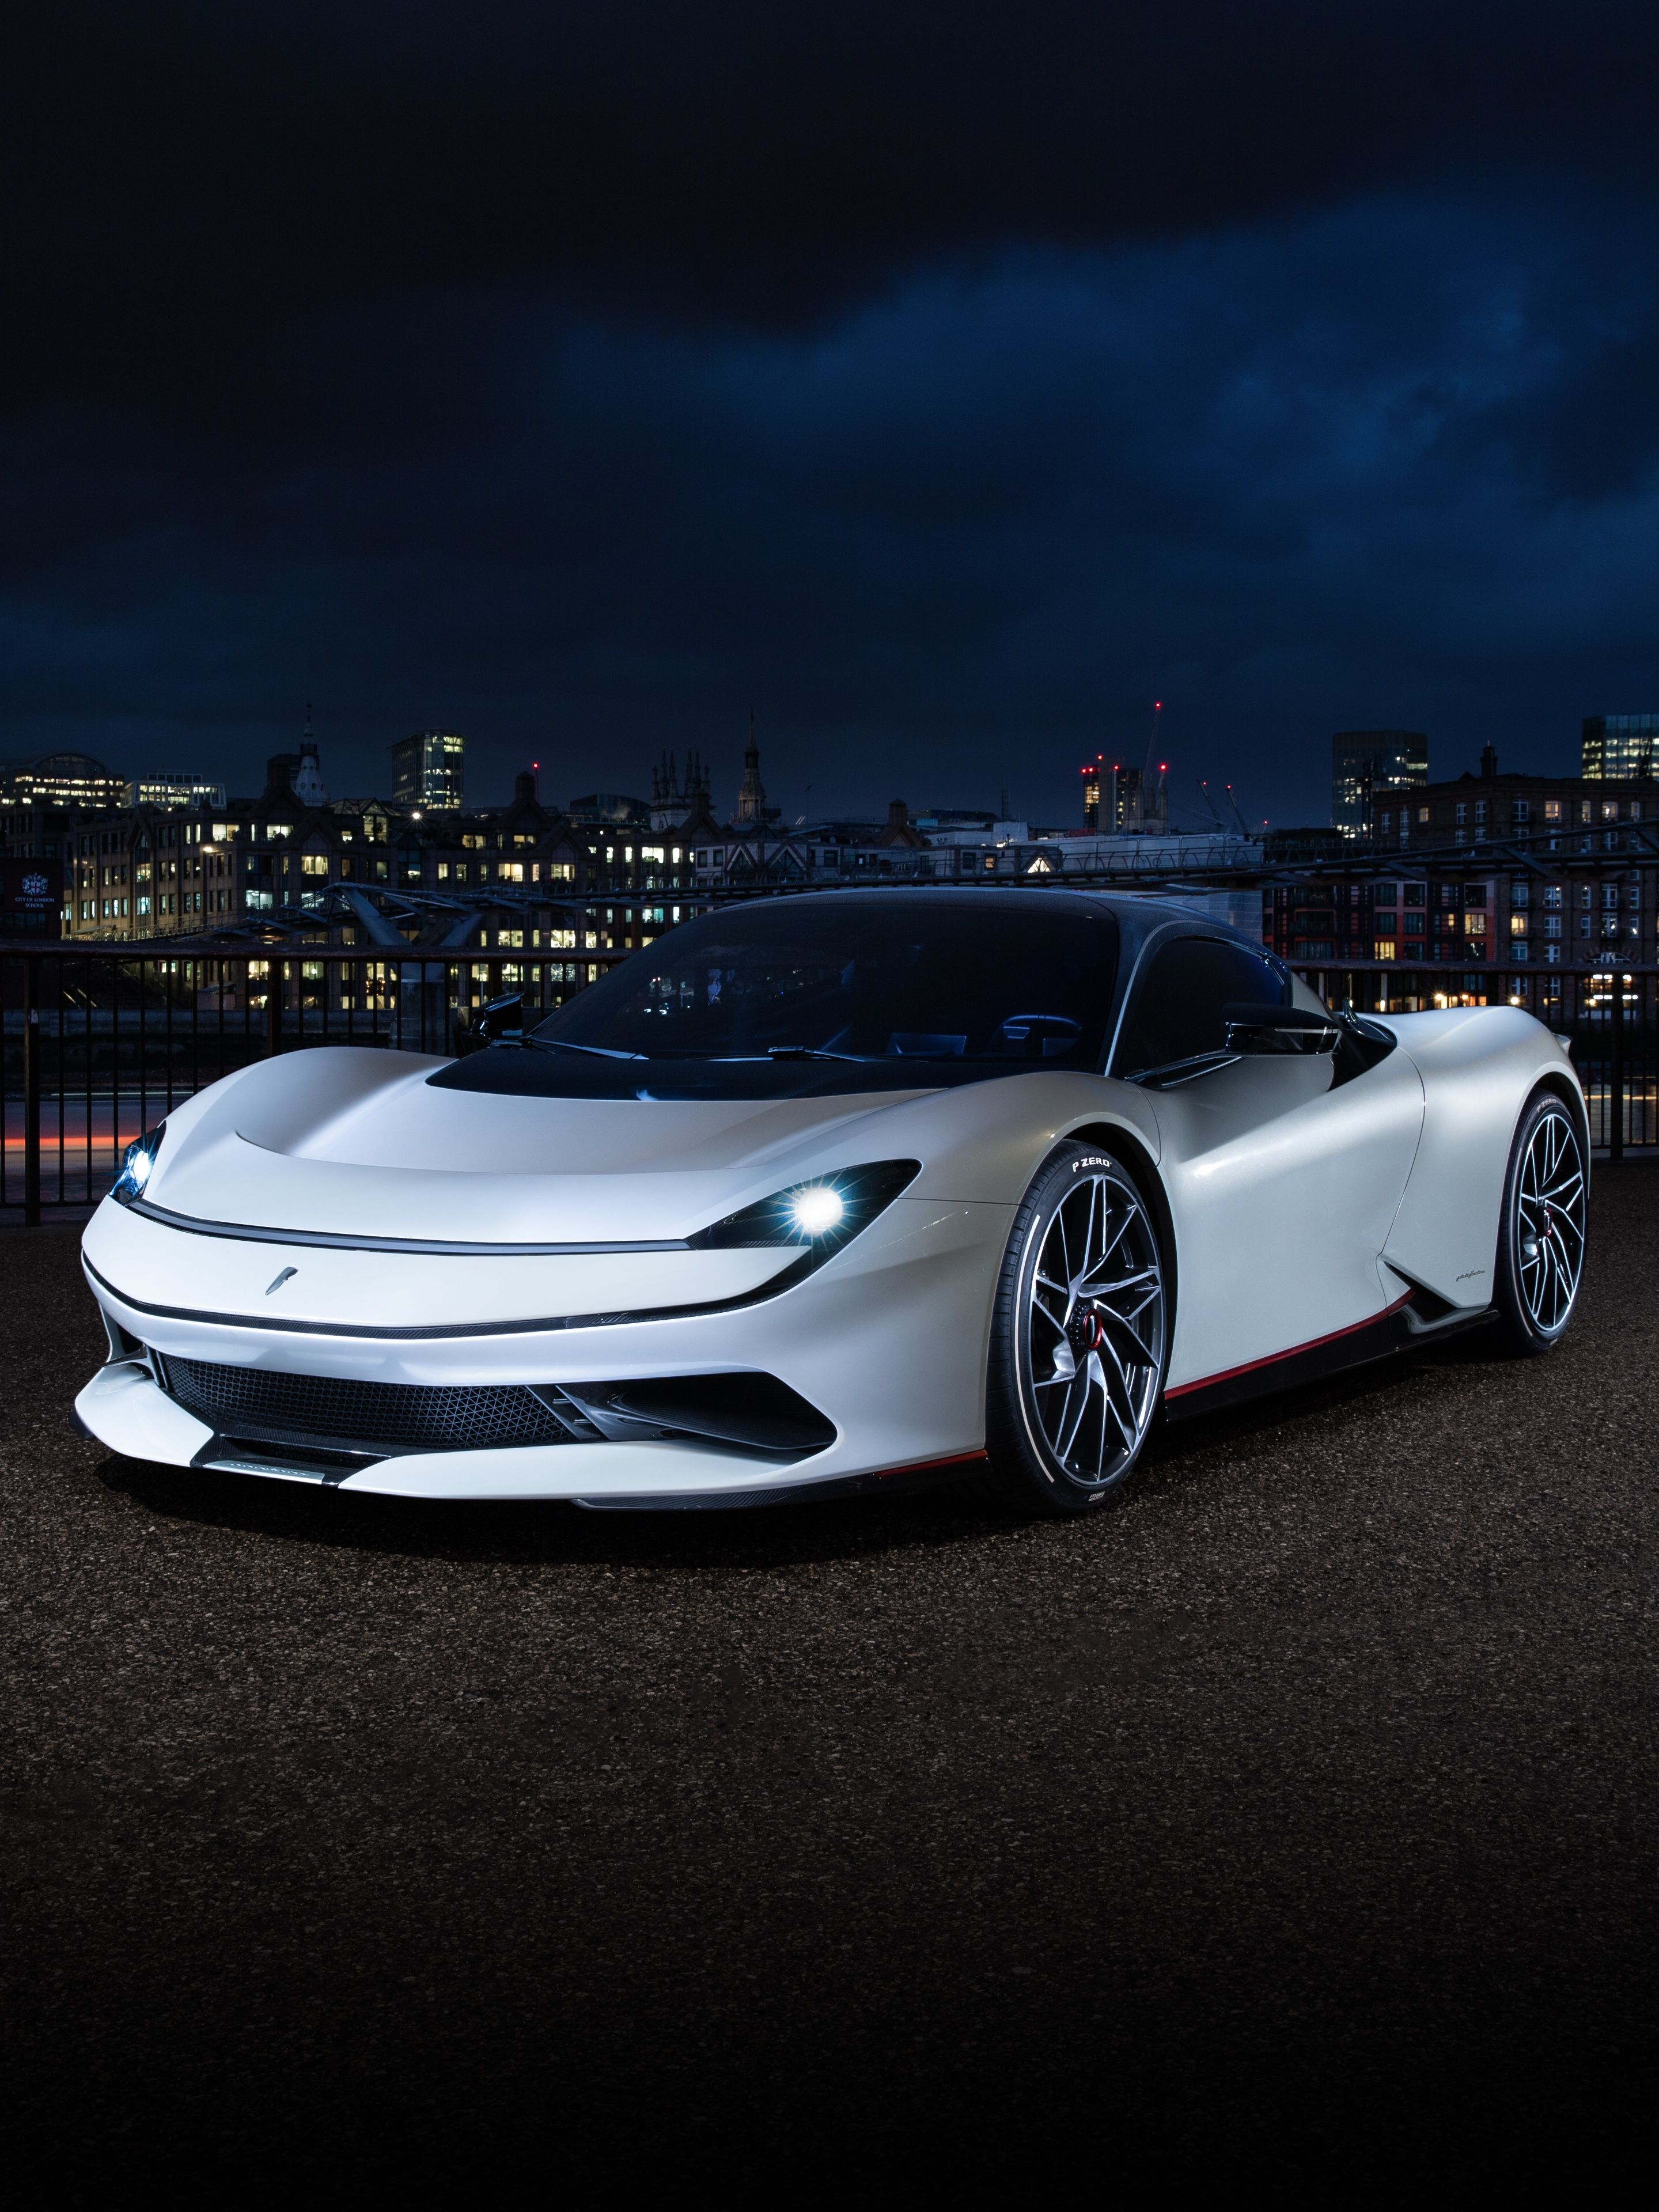 Pininfarina Battista New Supercar On The Block The Man Super Cars Car In The World Electric Sports Car